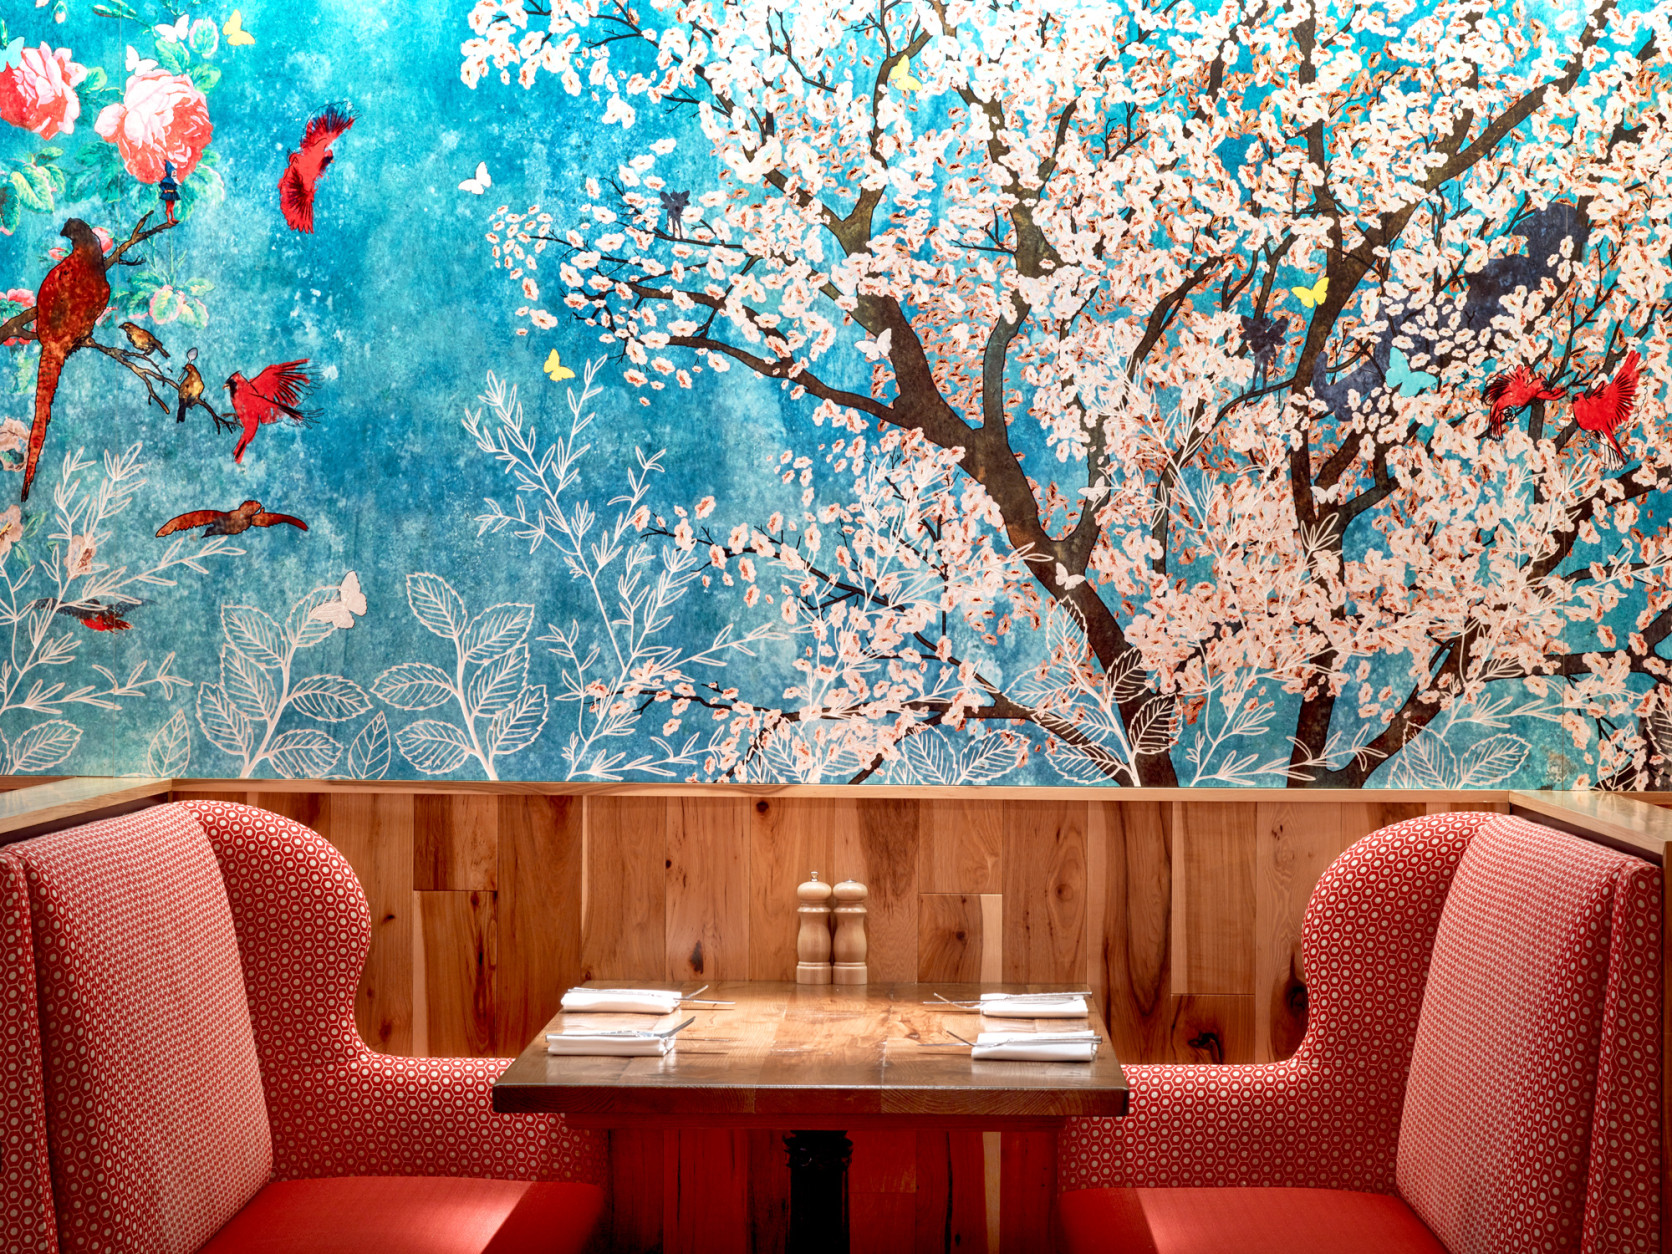 Feed The Senses Restaurants Chefs Place More Focus On Design Wtop